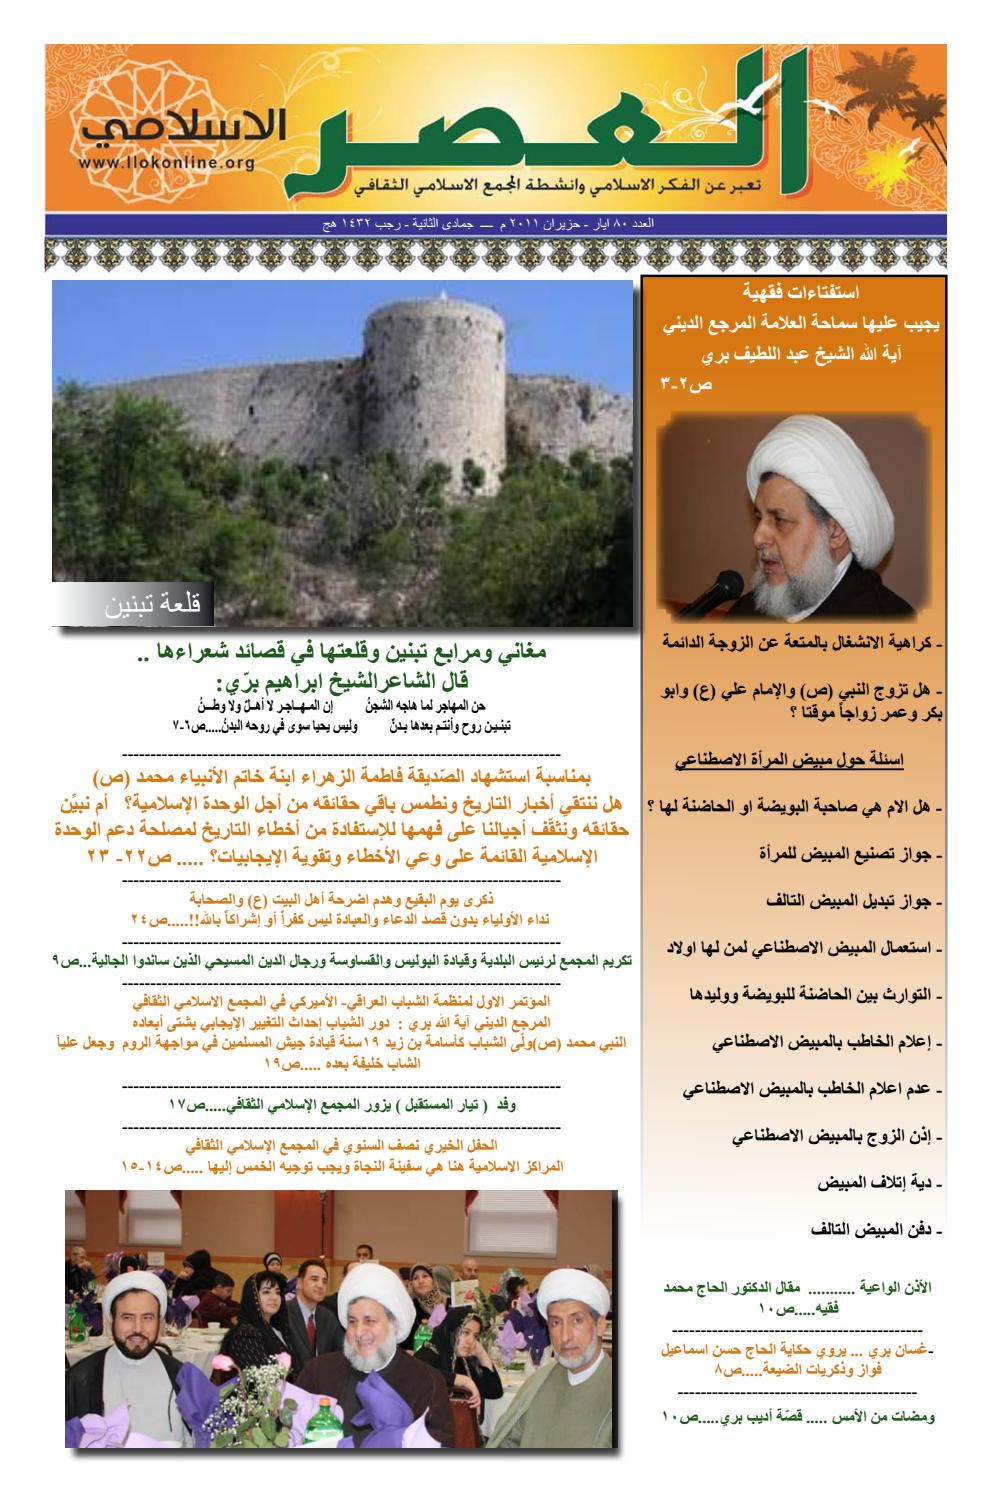 Islamic Times Issue 80 By Iiokonline Issuu